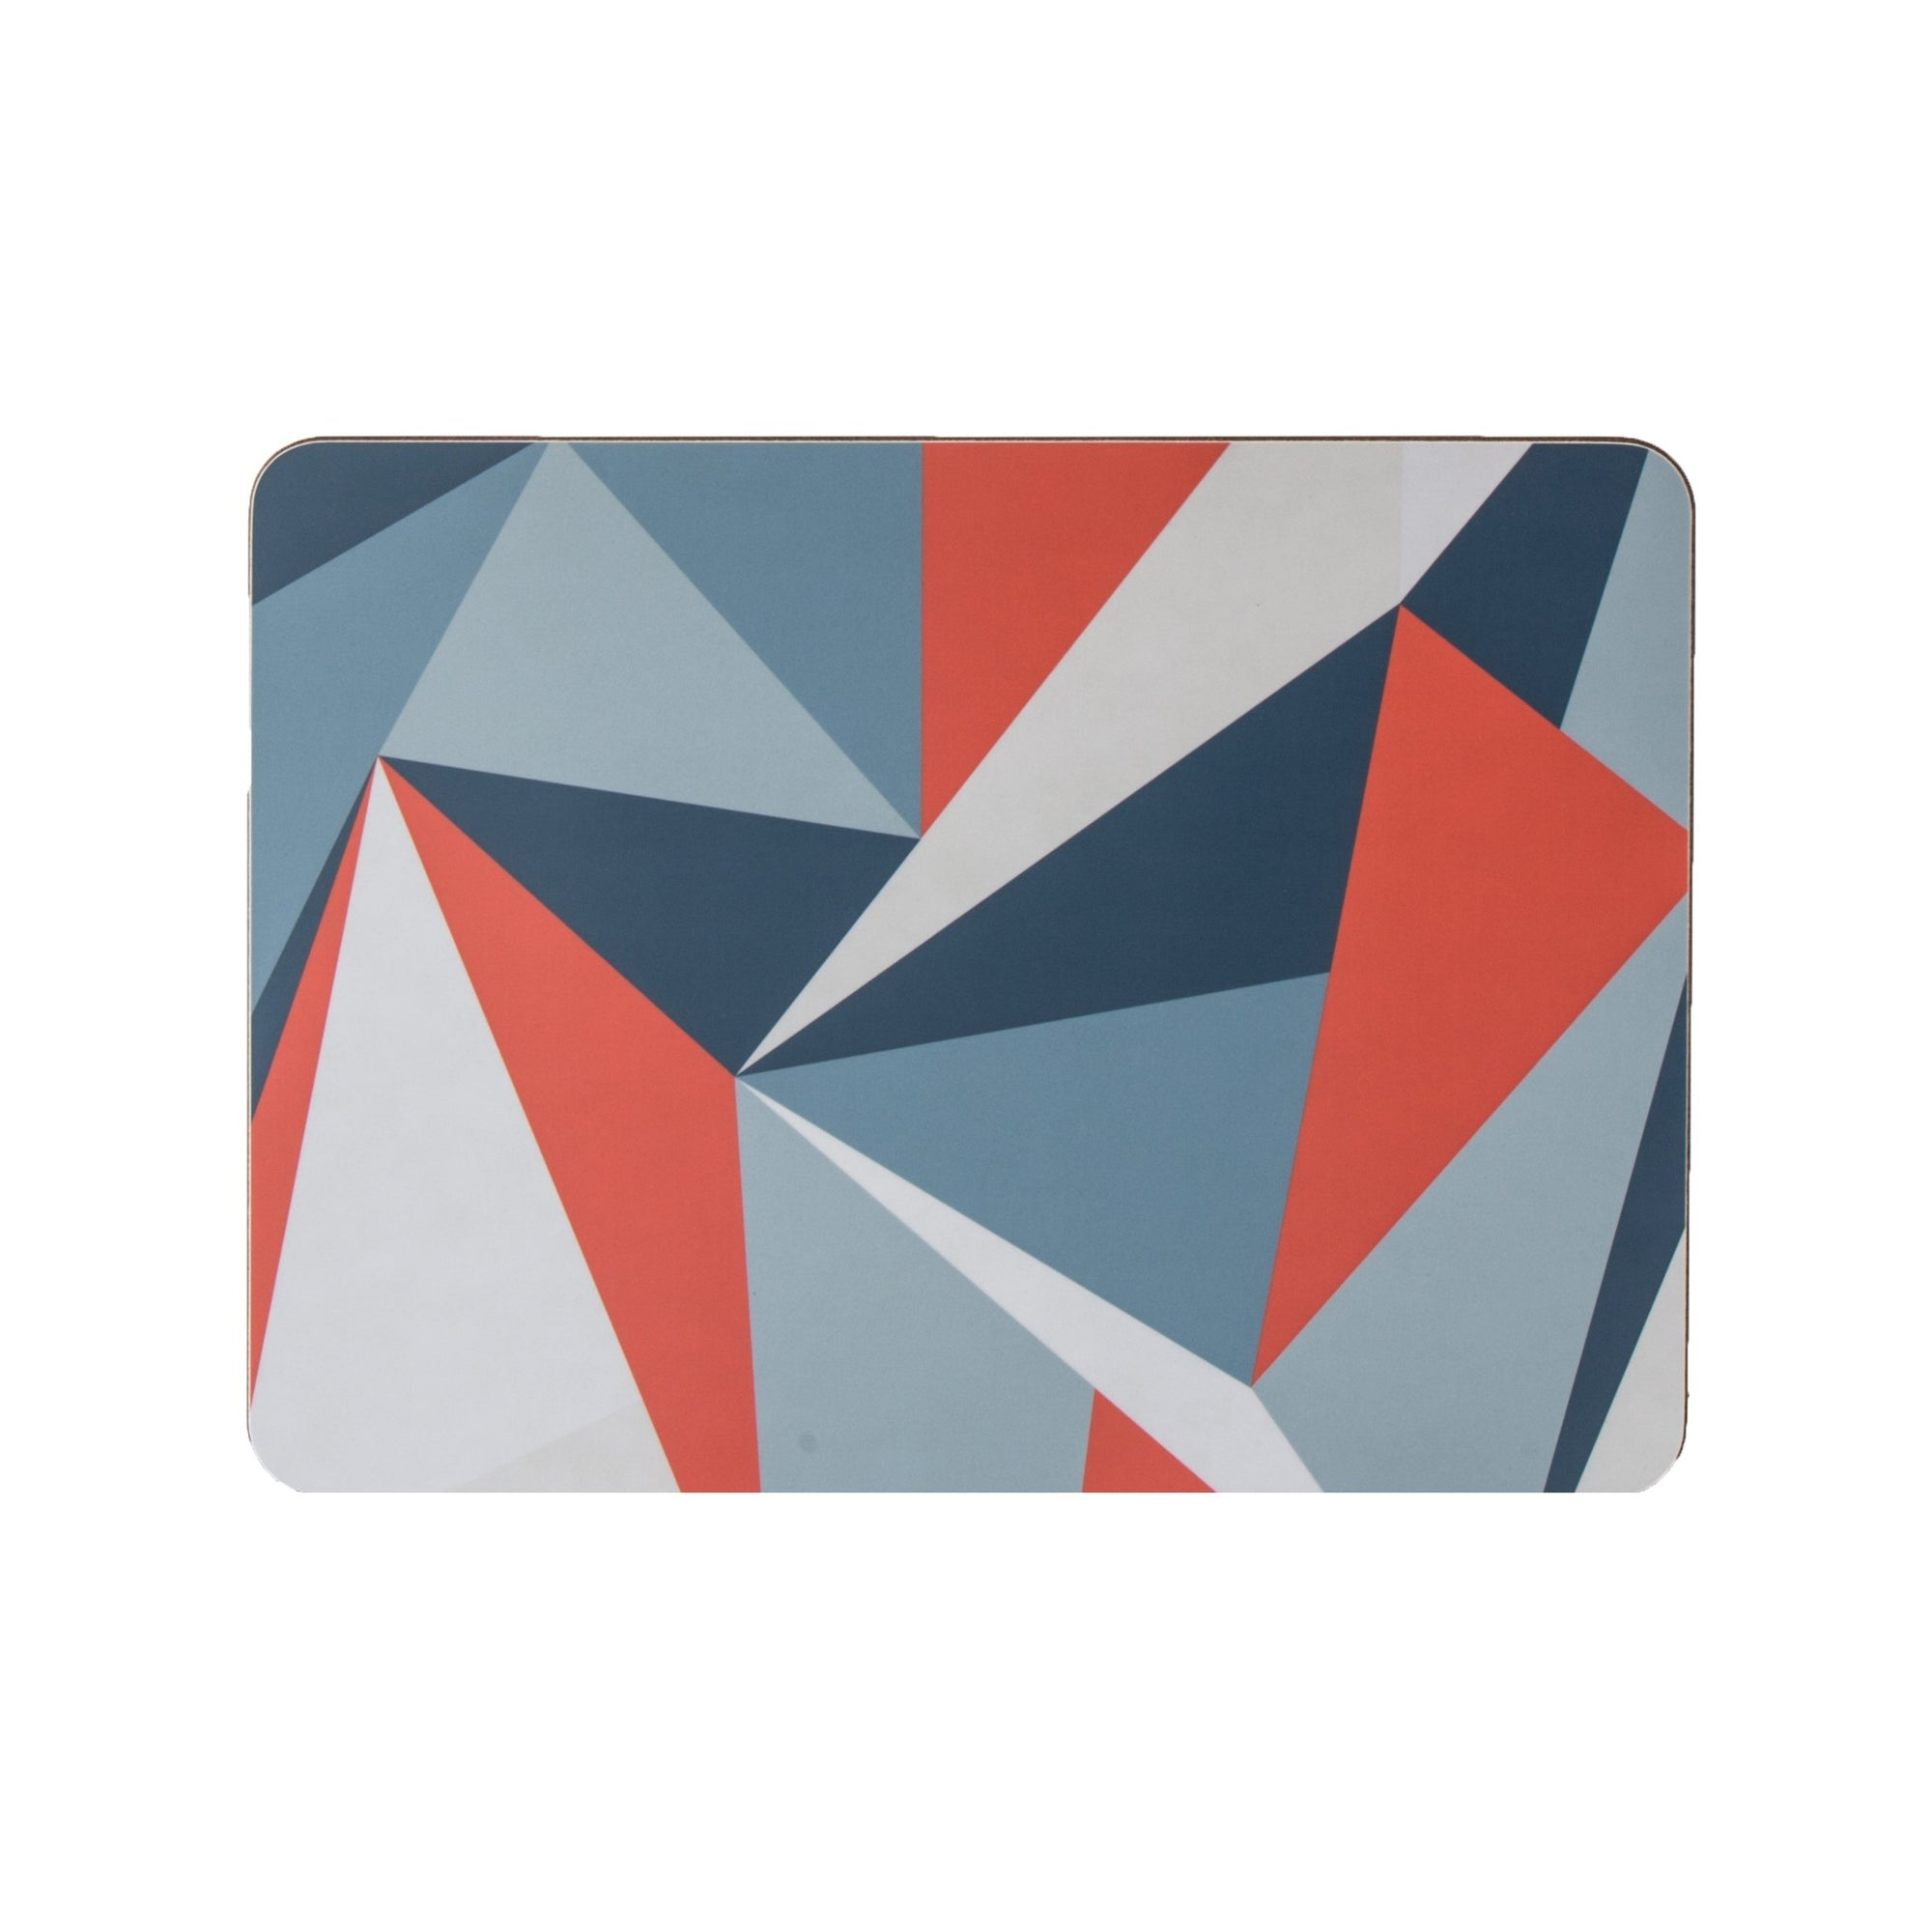 Coral Angles Rectangle Placemat Set - MAiK sustainably sourced, ethically produced.